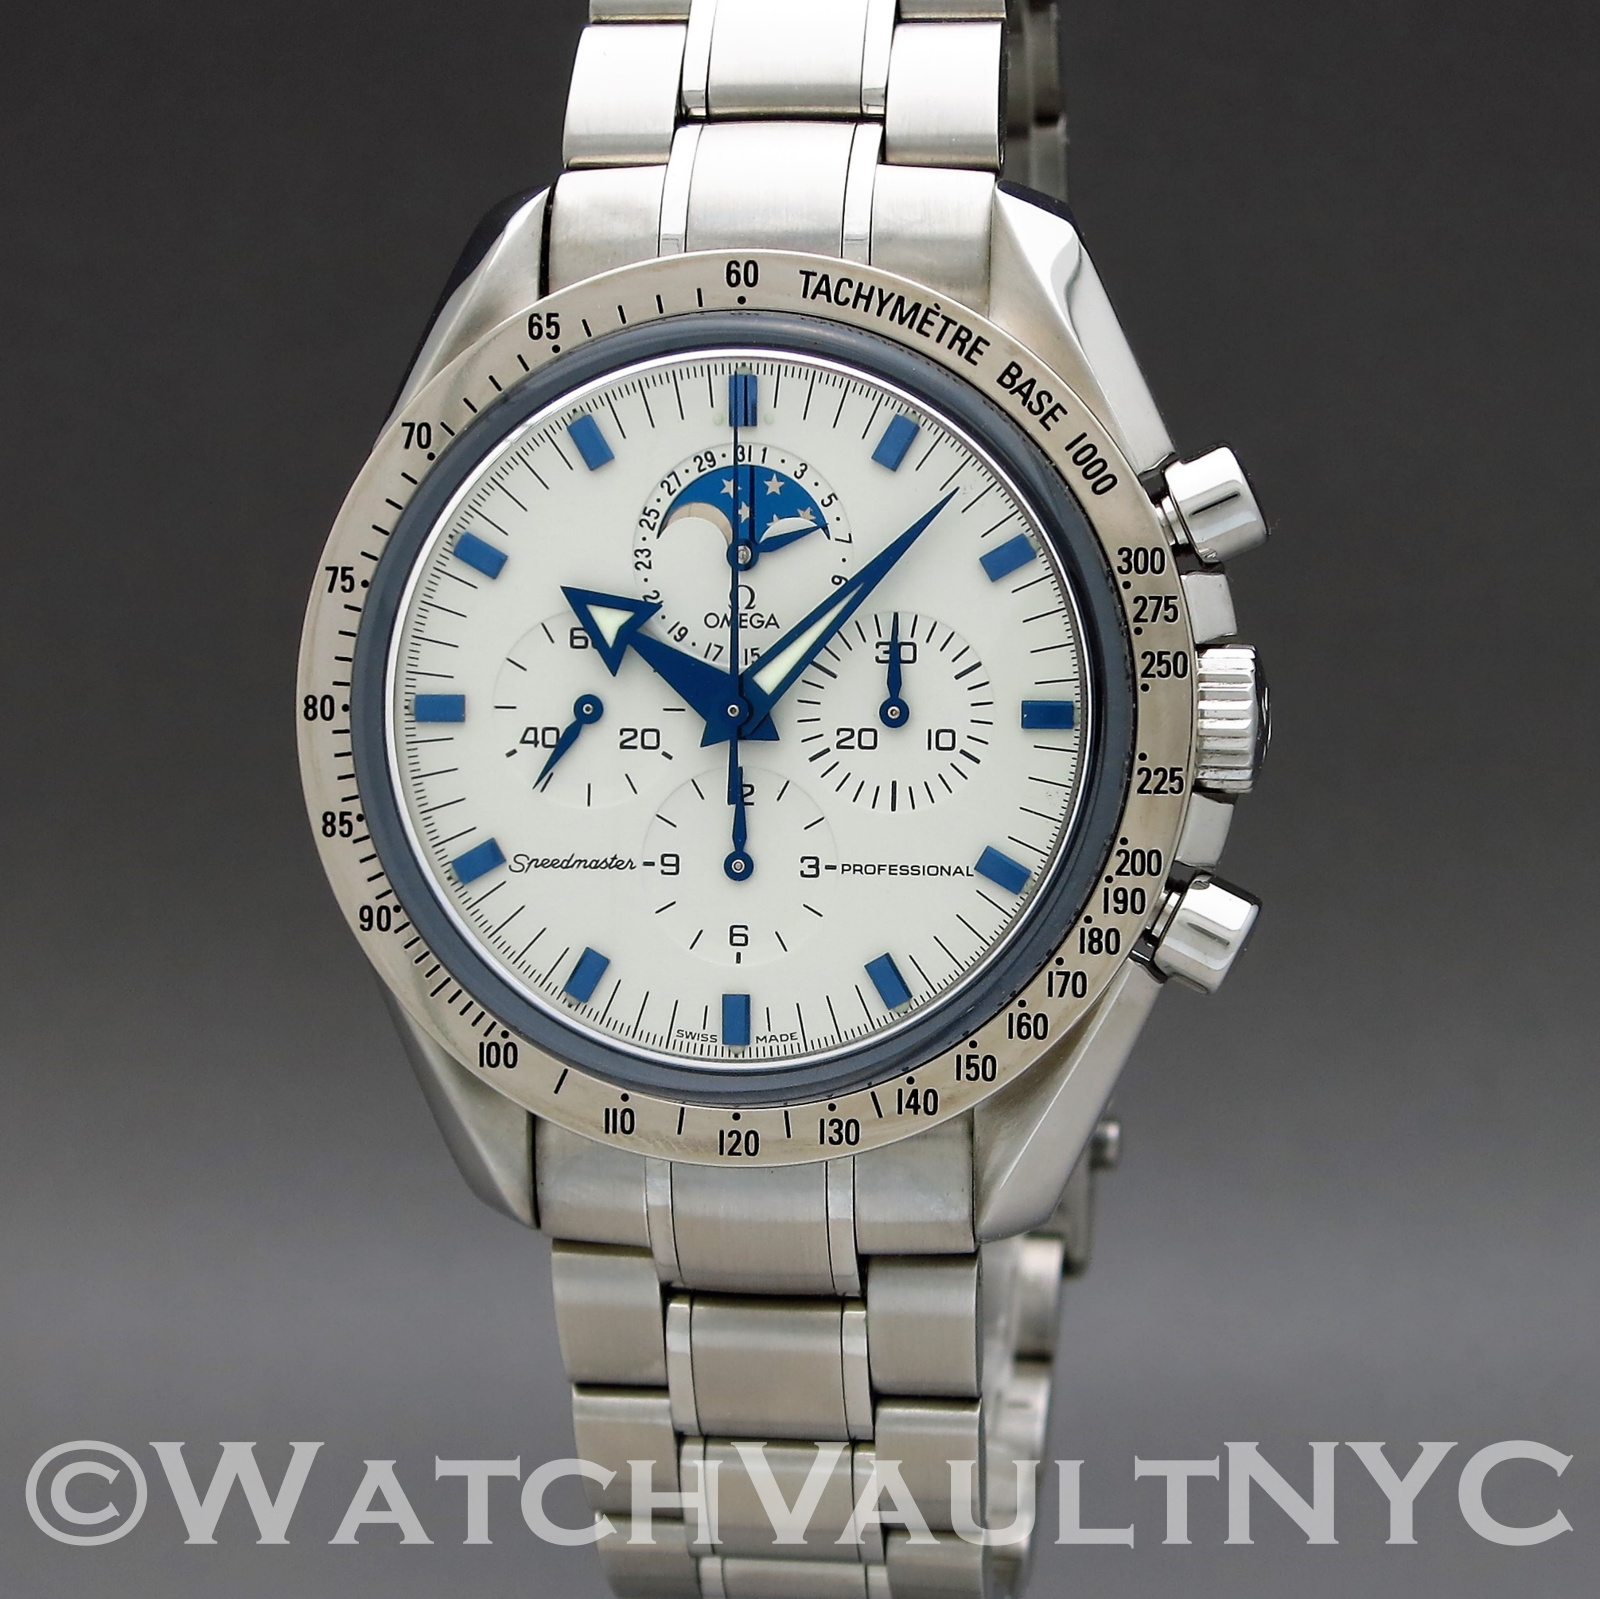 Omega Speedmaster Professional Moonwatch 3575 20 42mm Manual